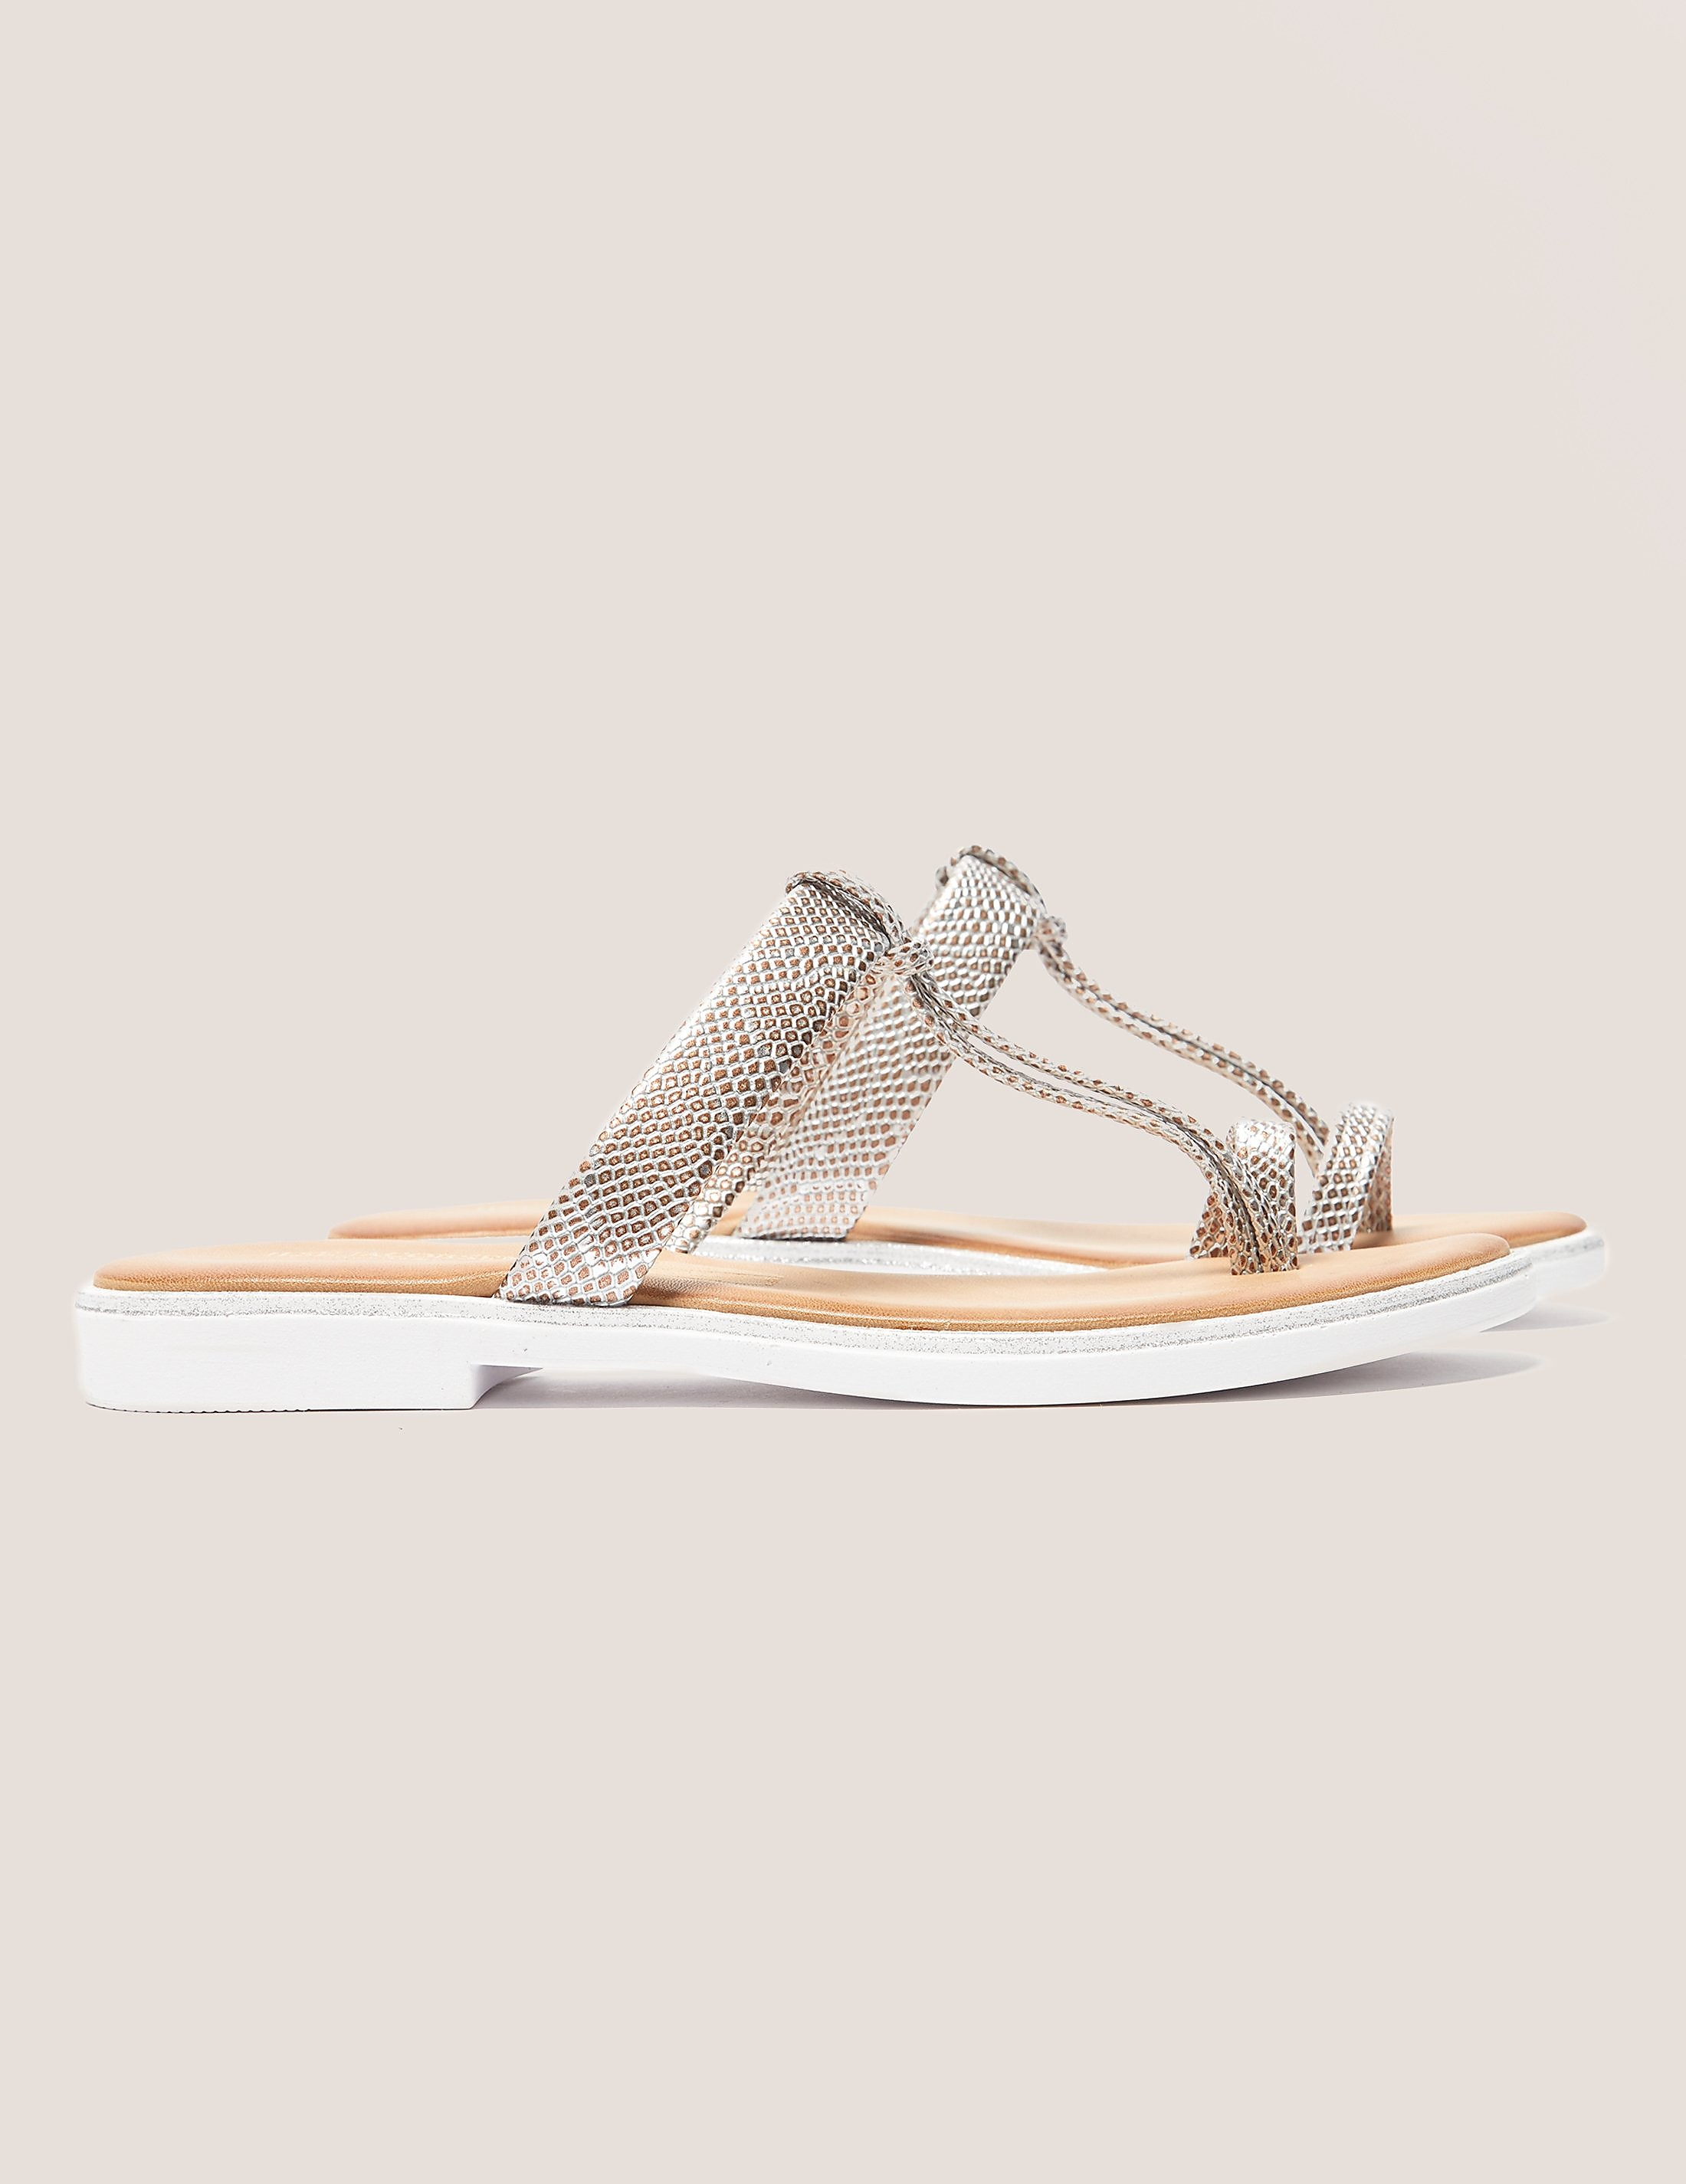 Ilse Jacobsen Poppy Slip On Sandals